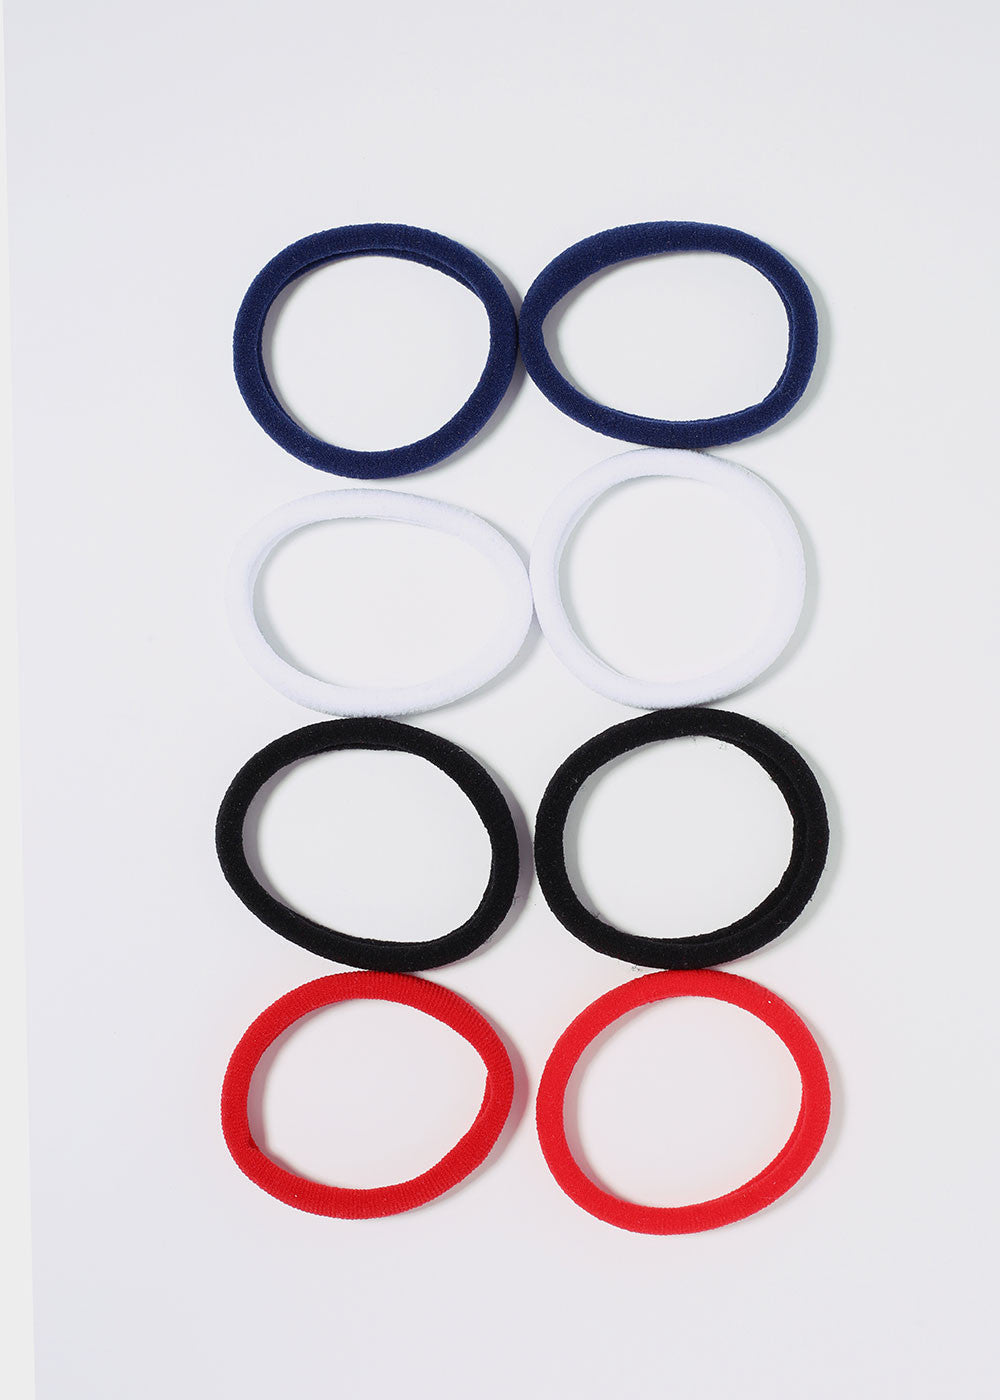 8 Piece Multi-Color Soft Hair Ties